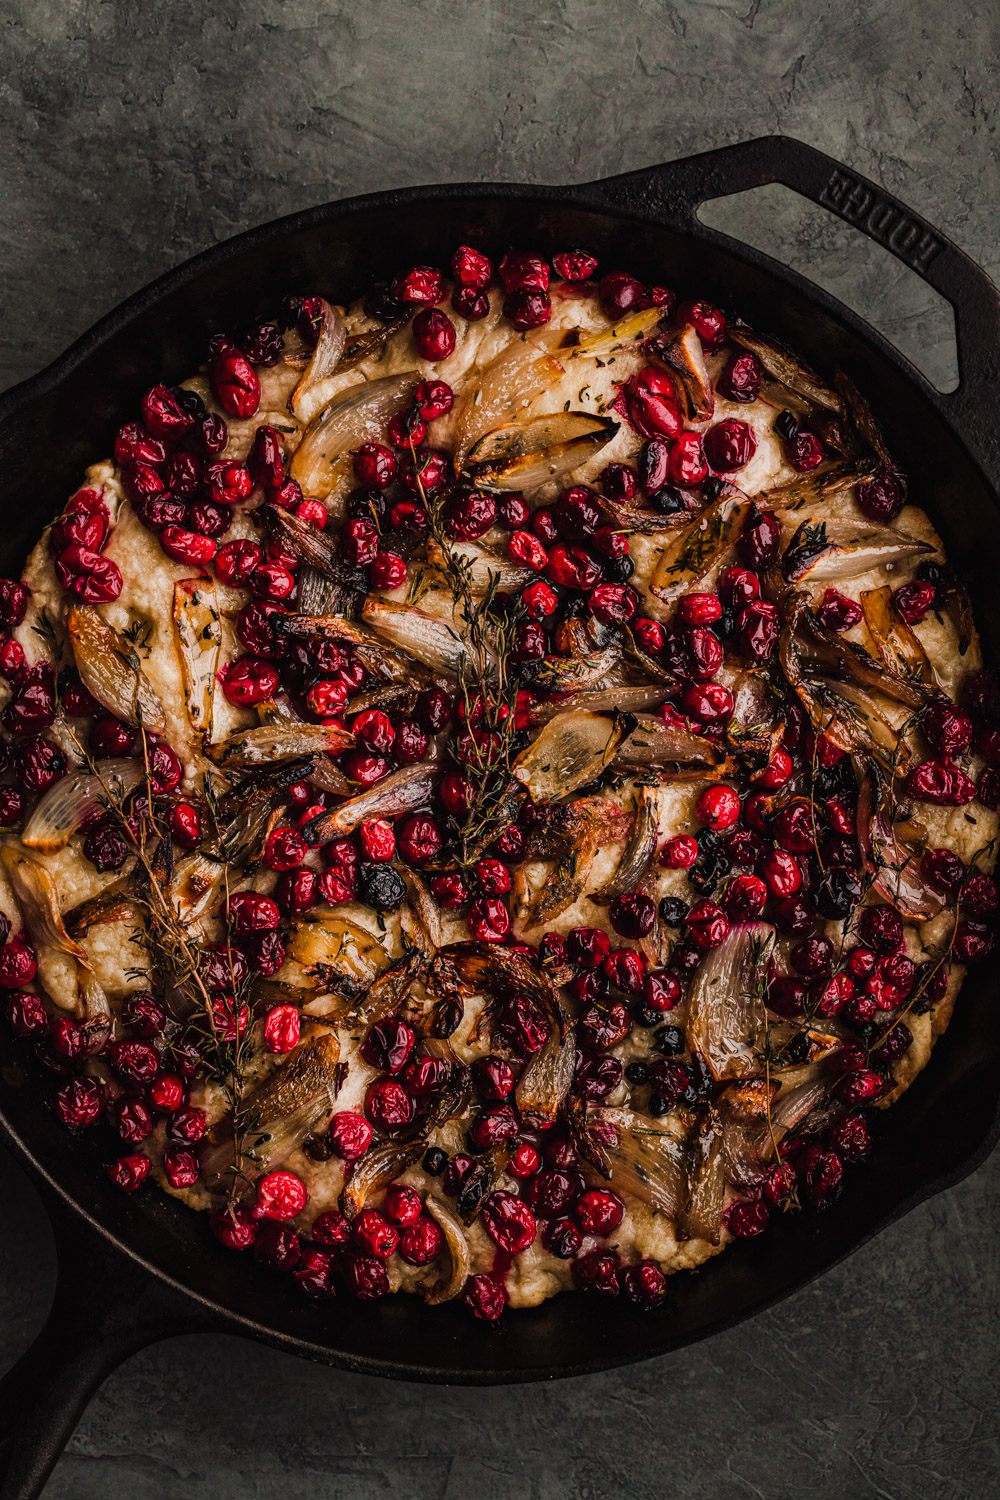 another cranberry focaccia with shallots in a skillet. just out of the oven.